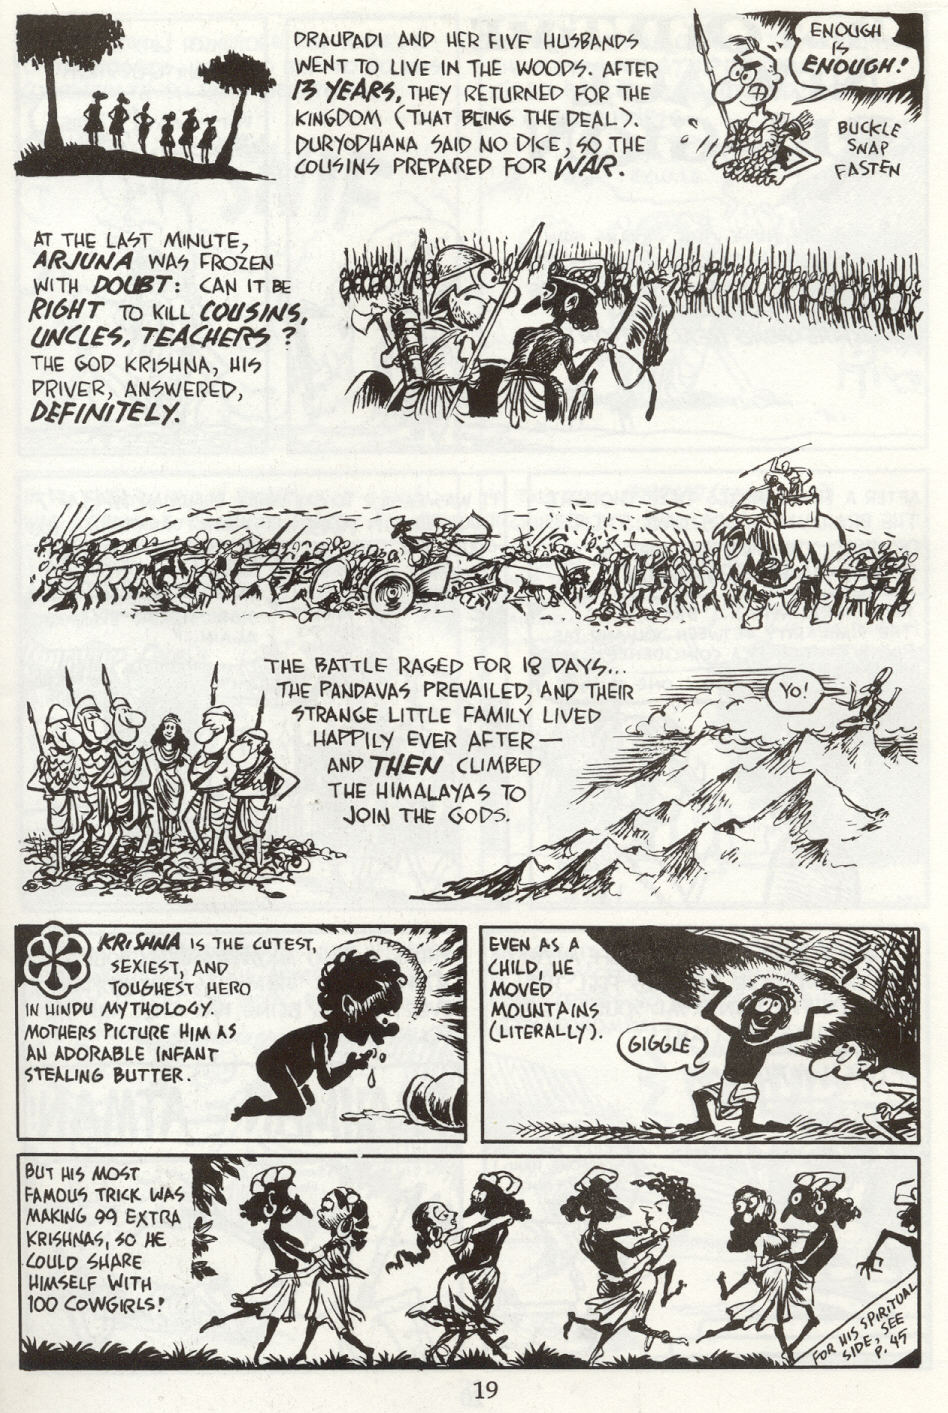 Read online The Cartoon History of the Universe comic -  Issue #8 - 22